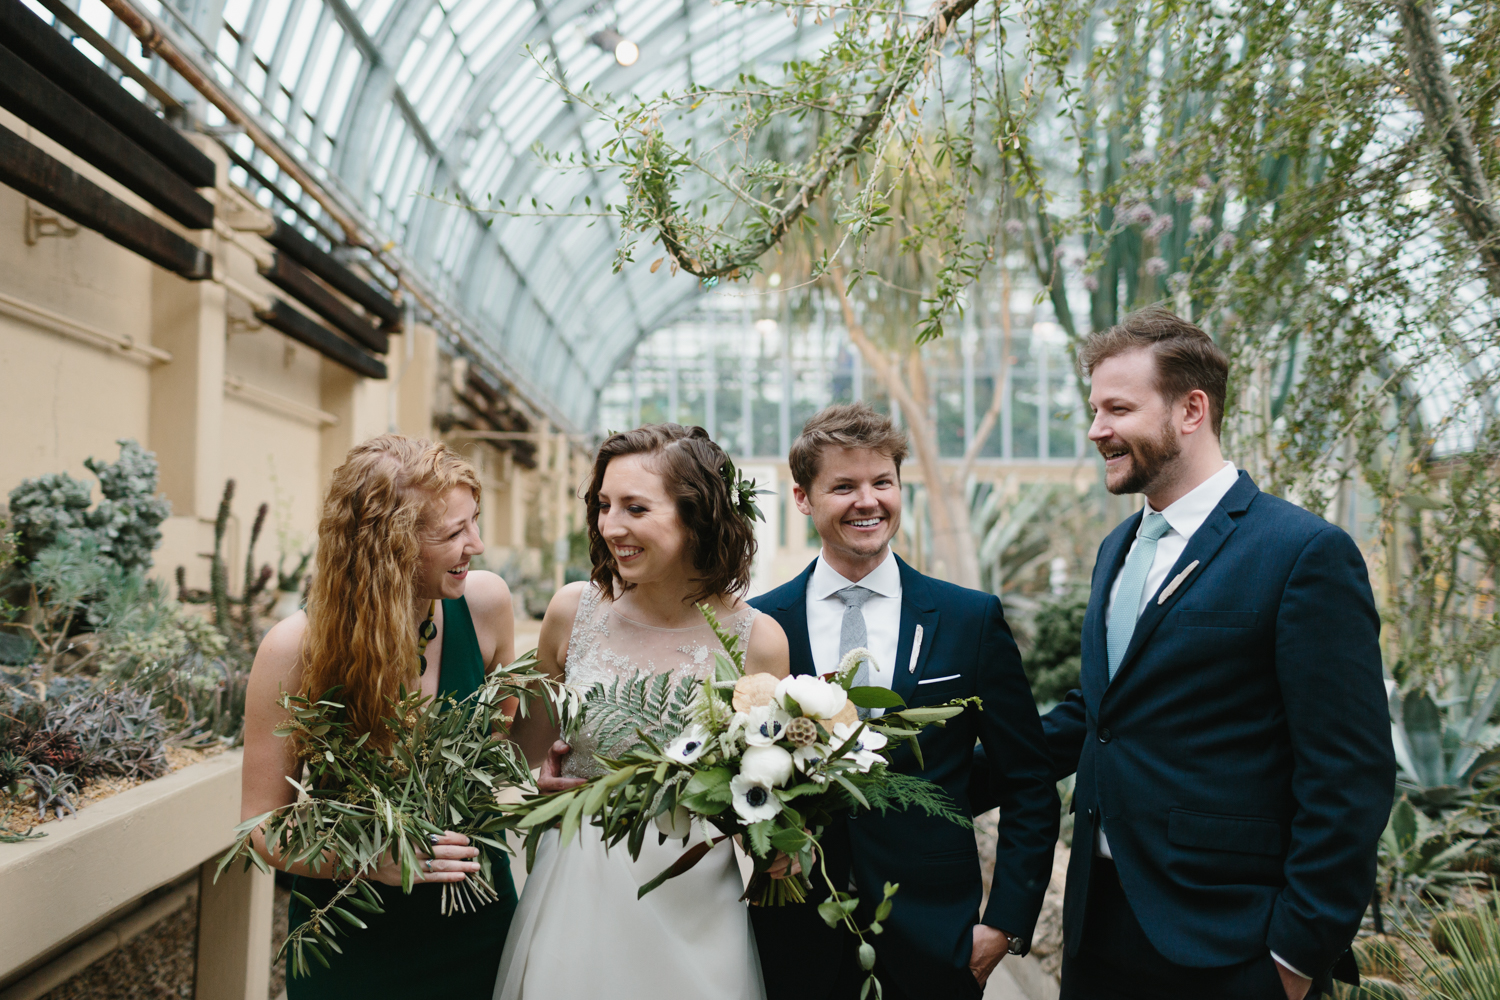 Chicago Garfield Park Conservatory Wedding by Northern Michigan Photographer Mae Stier-047.jpg